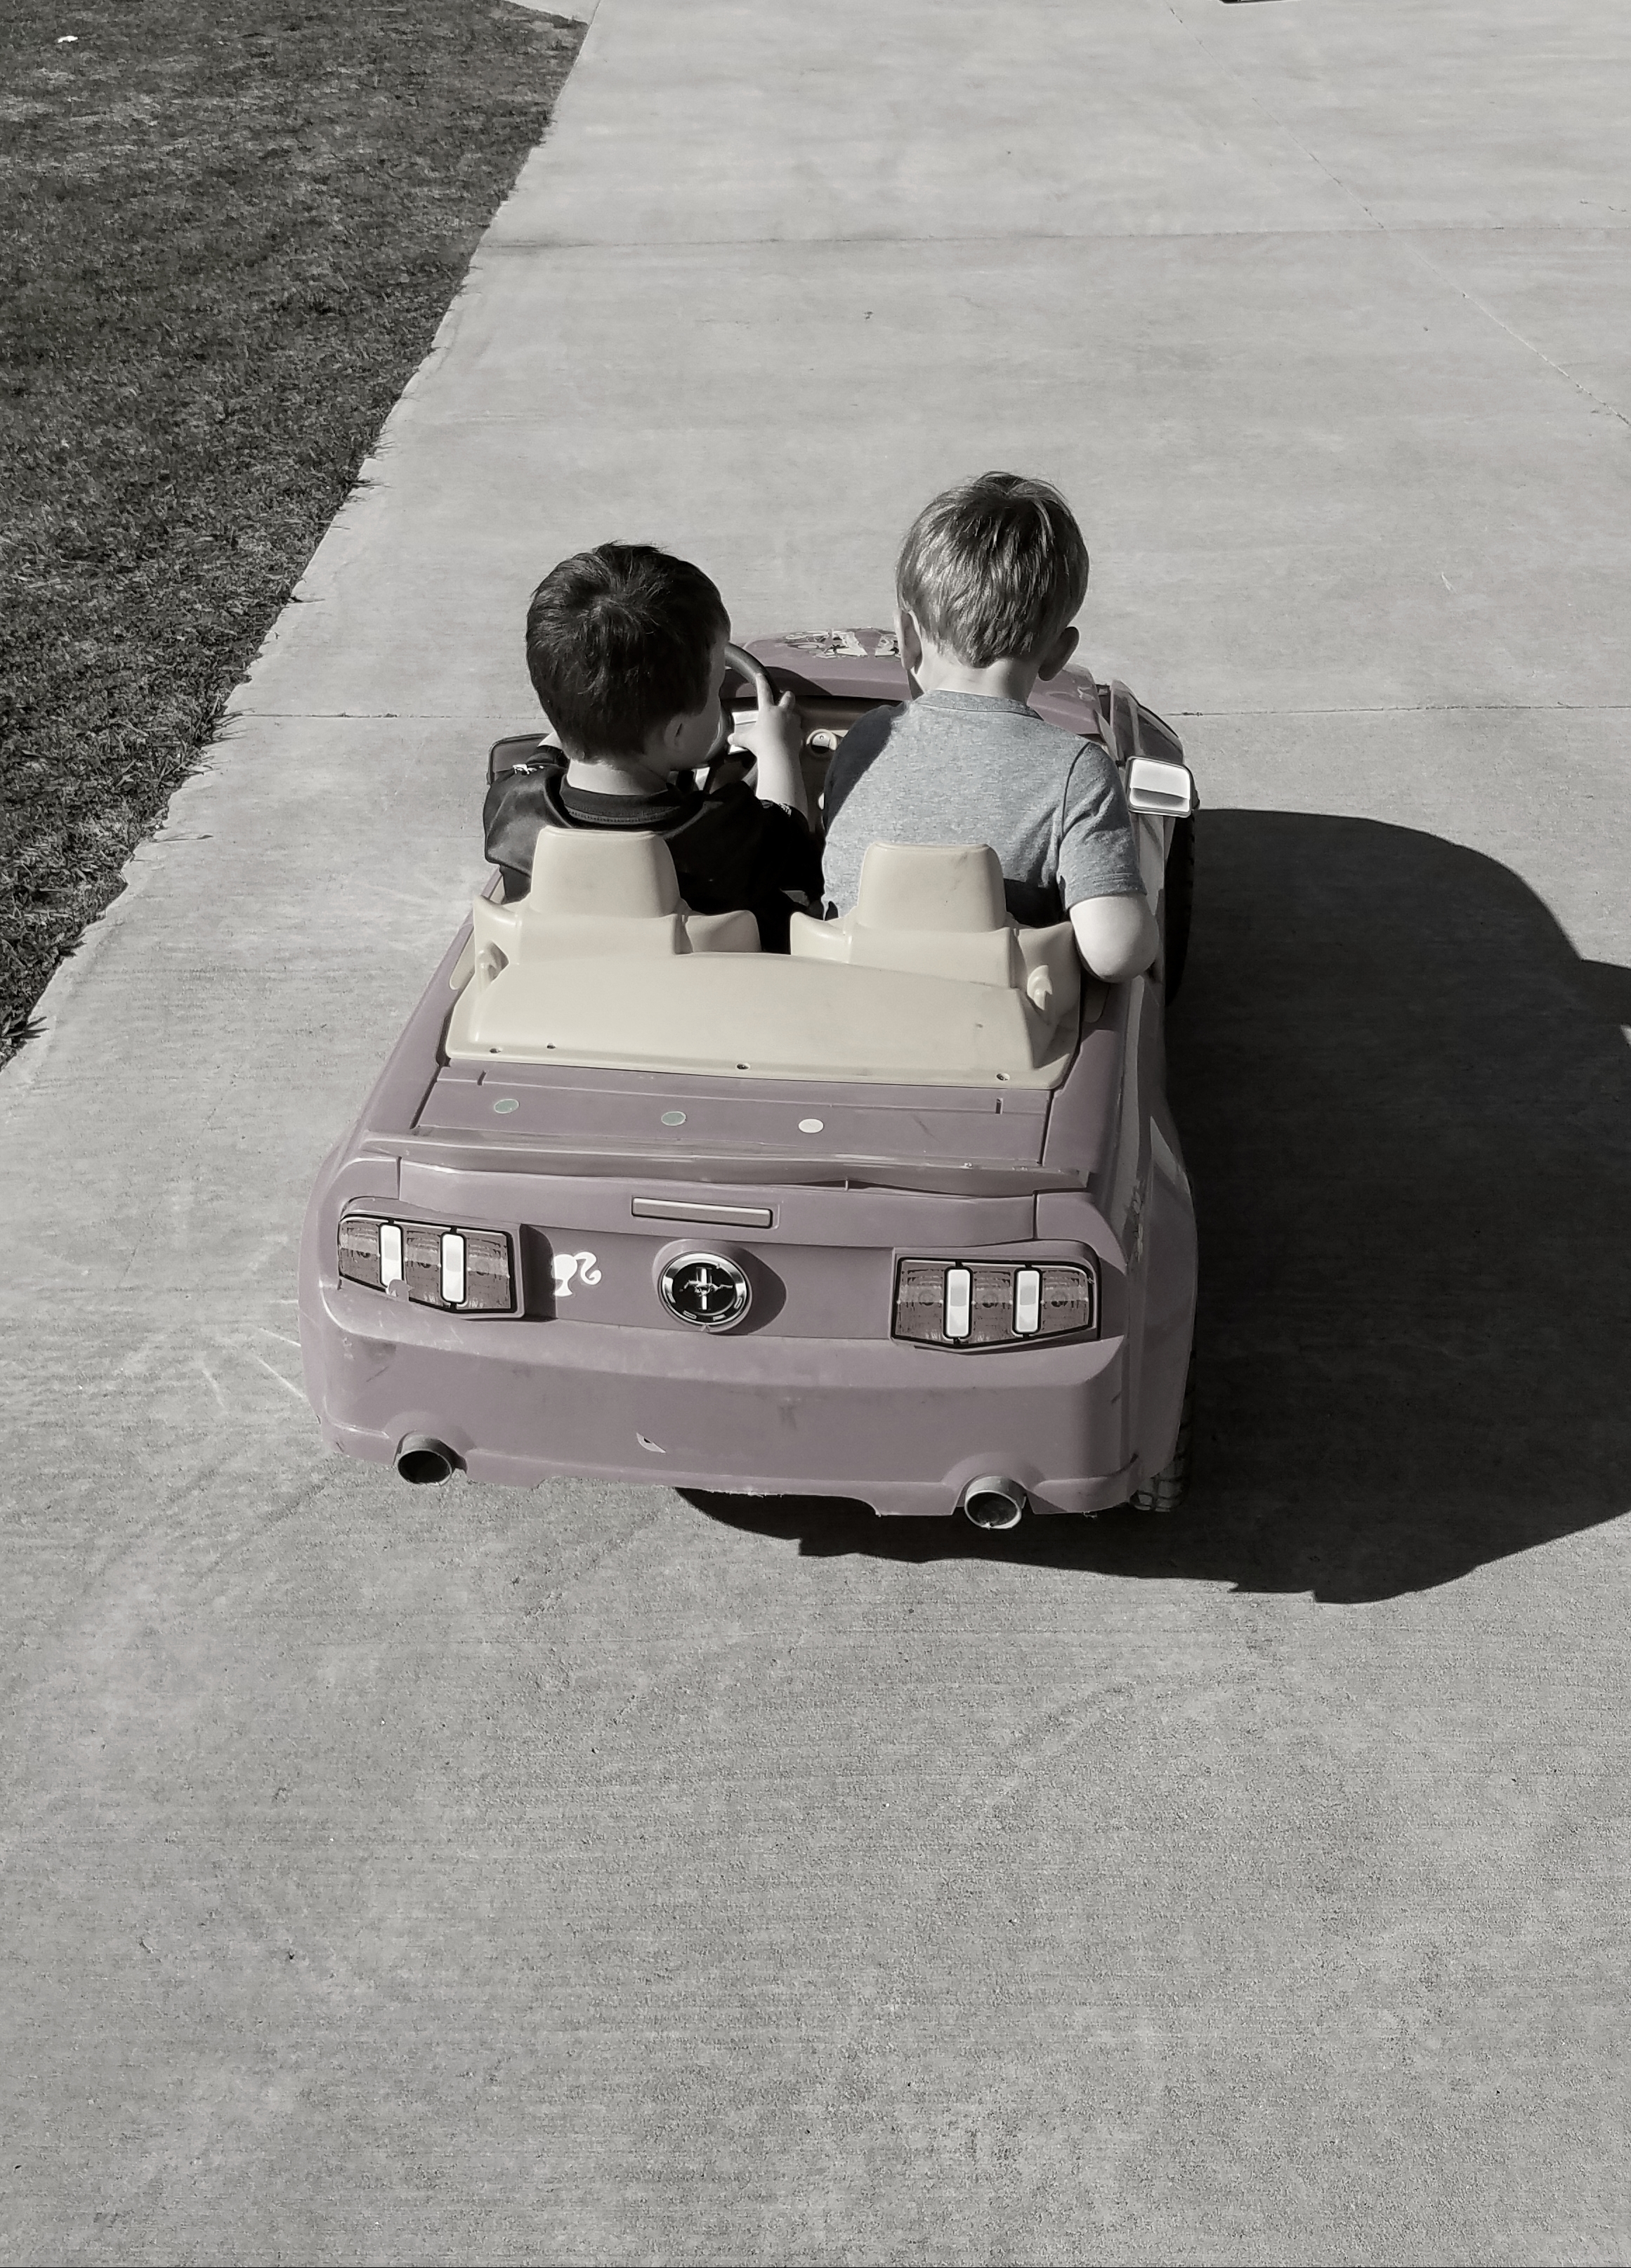 My son, the backseat driver, with his cousin behind the wheel.